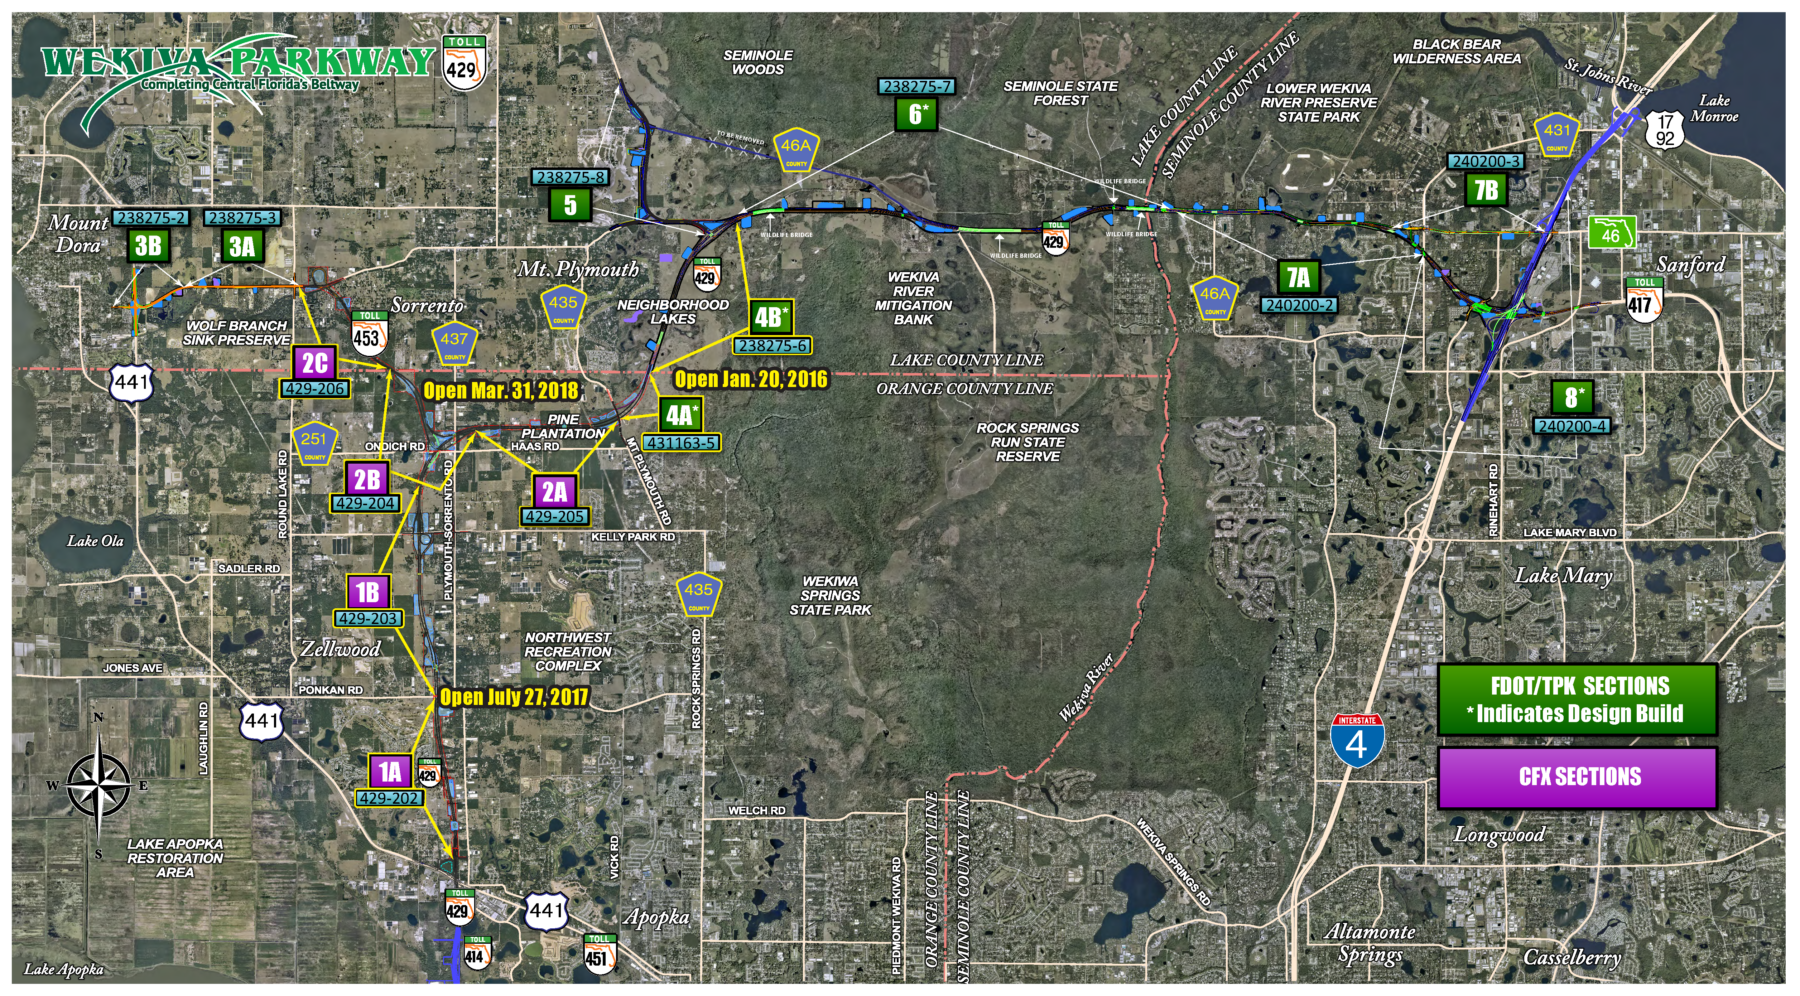 Wekiva Parkway Map indicating opening dates for new sections